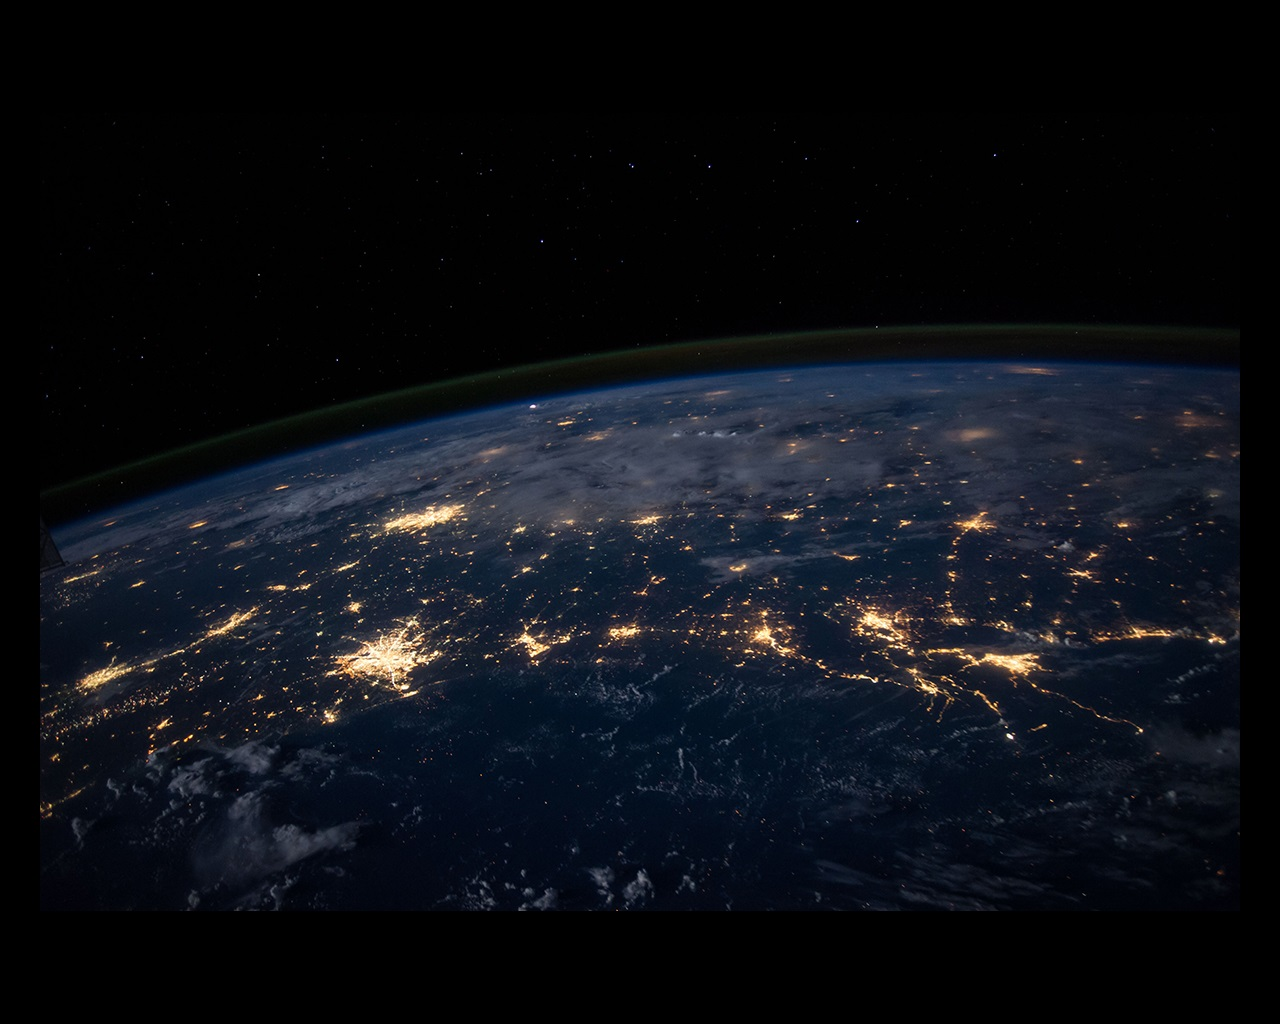 Night view of Earth from above with city lights